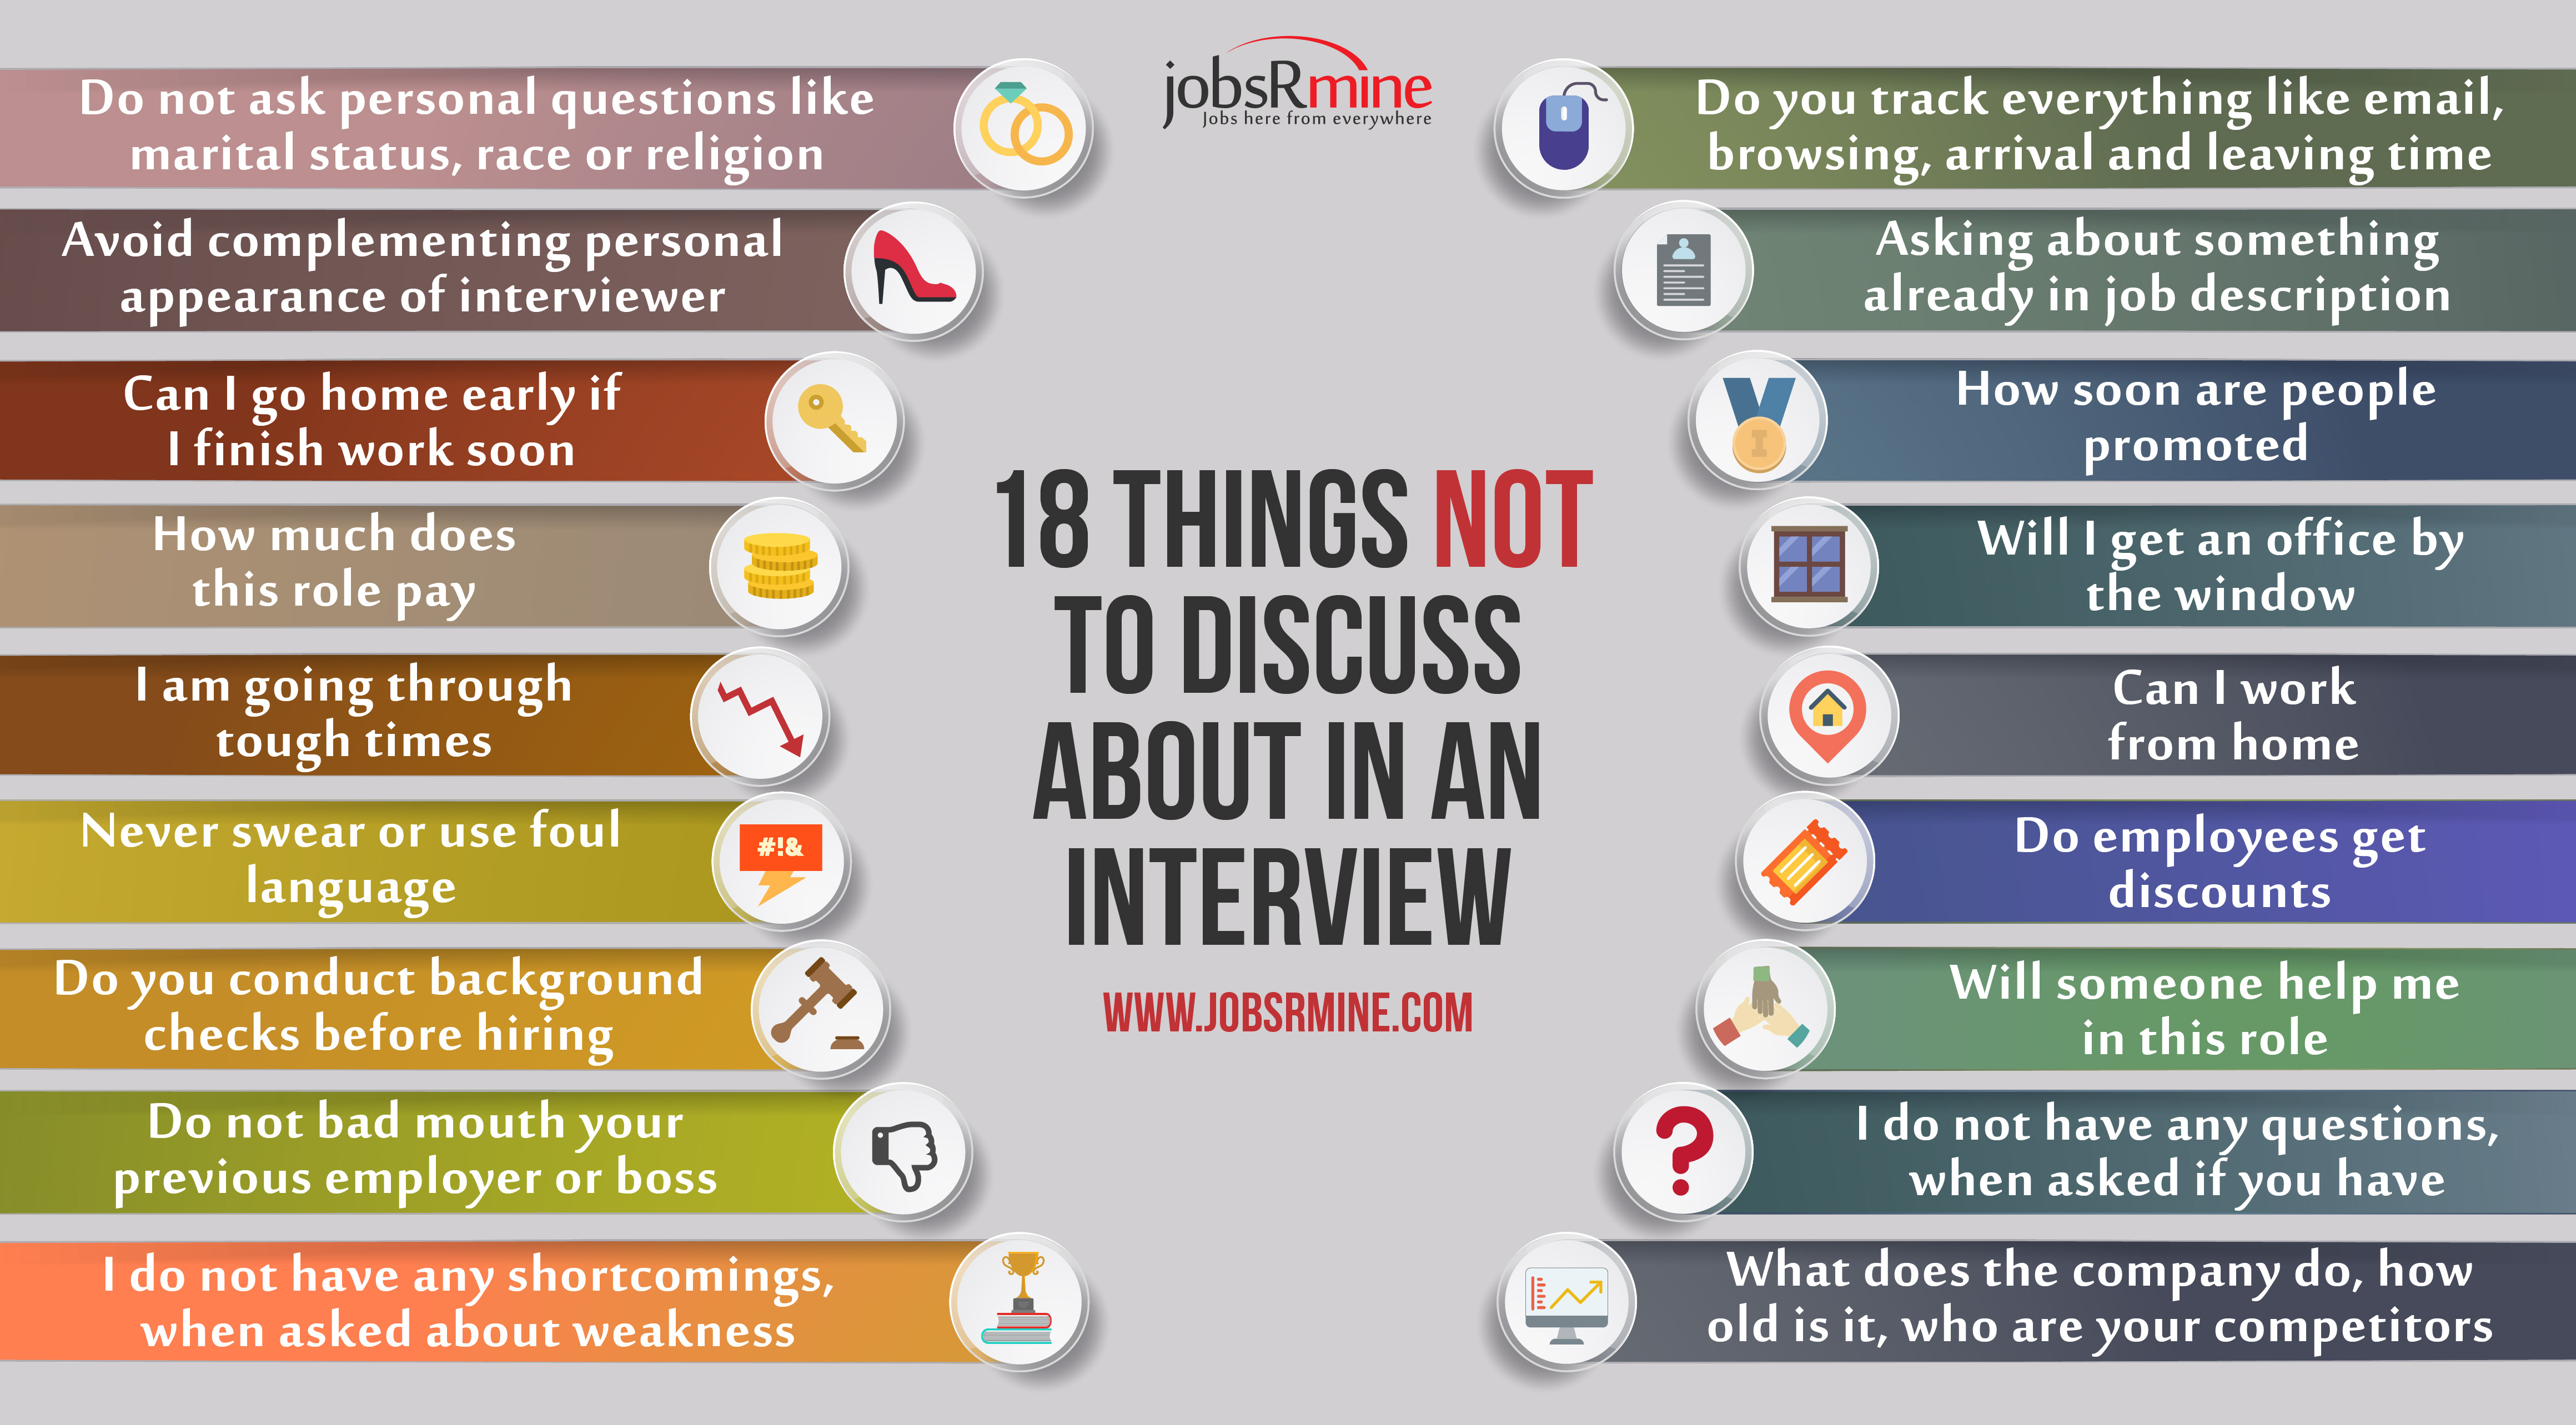 Download Questions to avoid in interview for free, by clicking download button